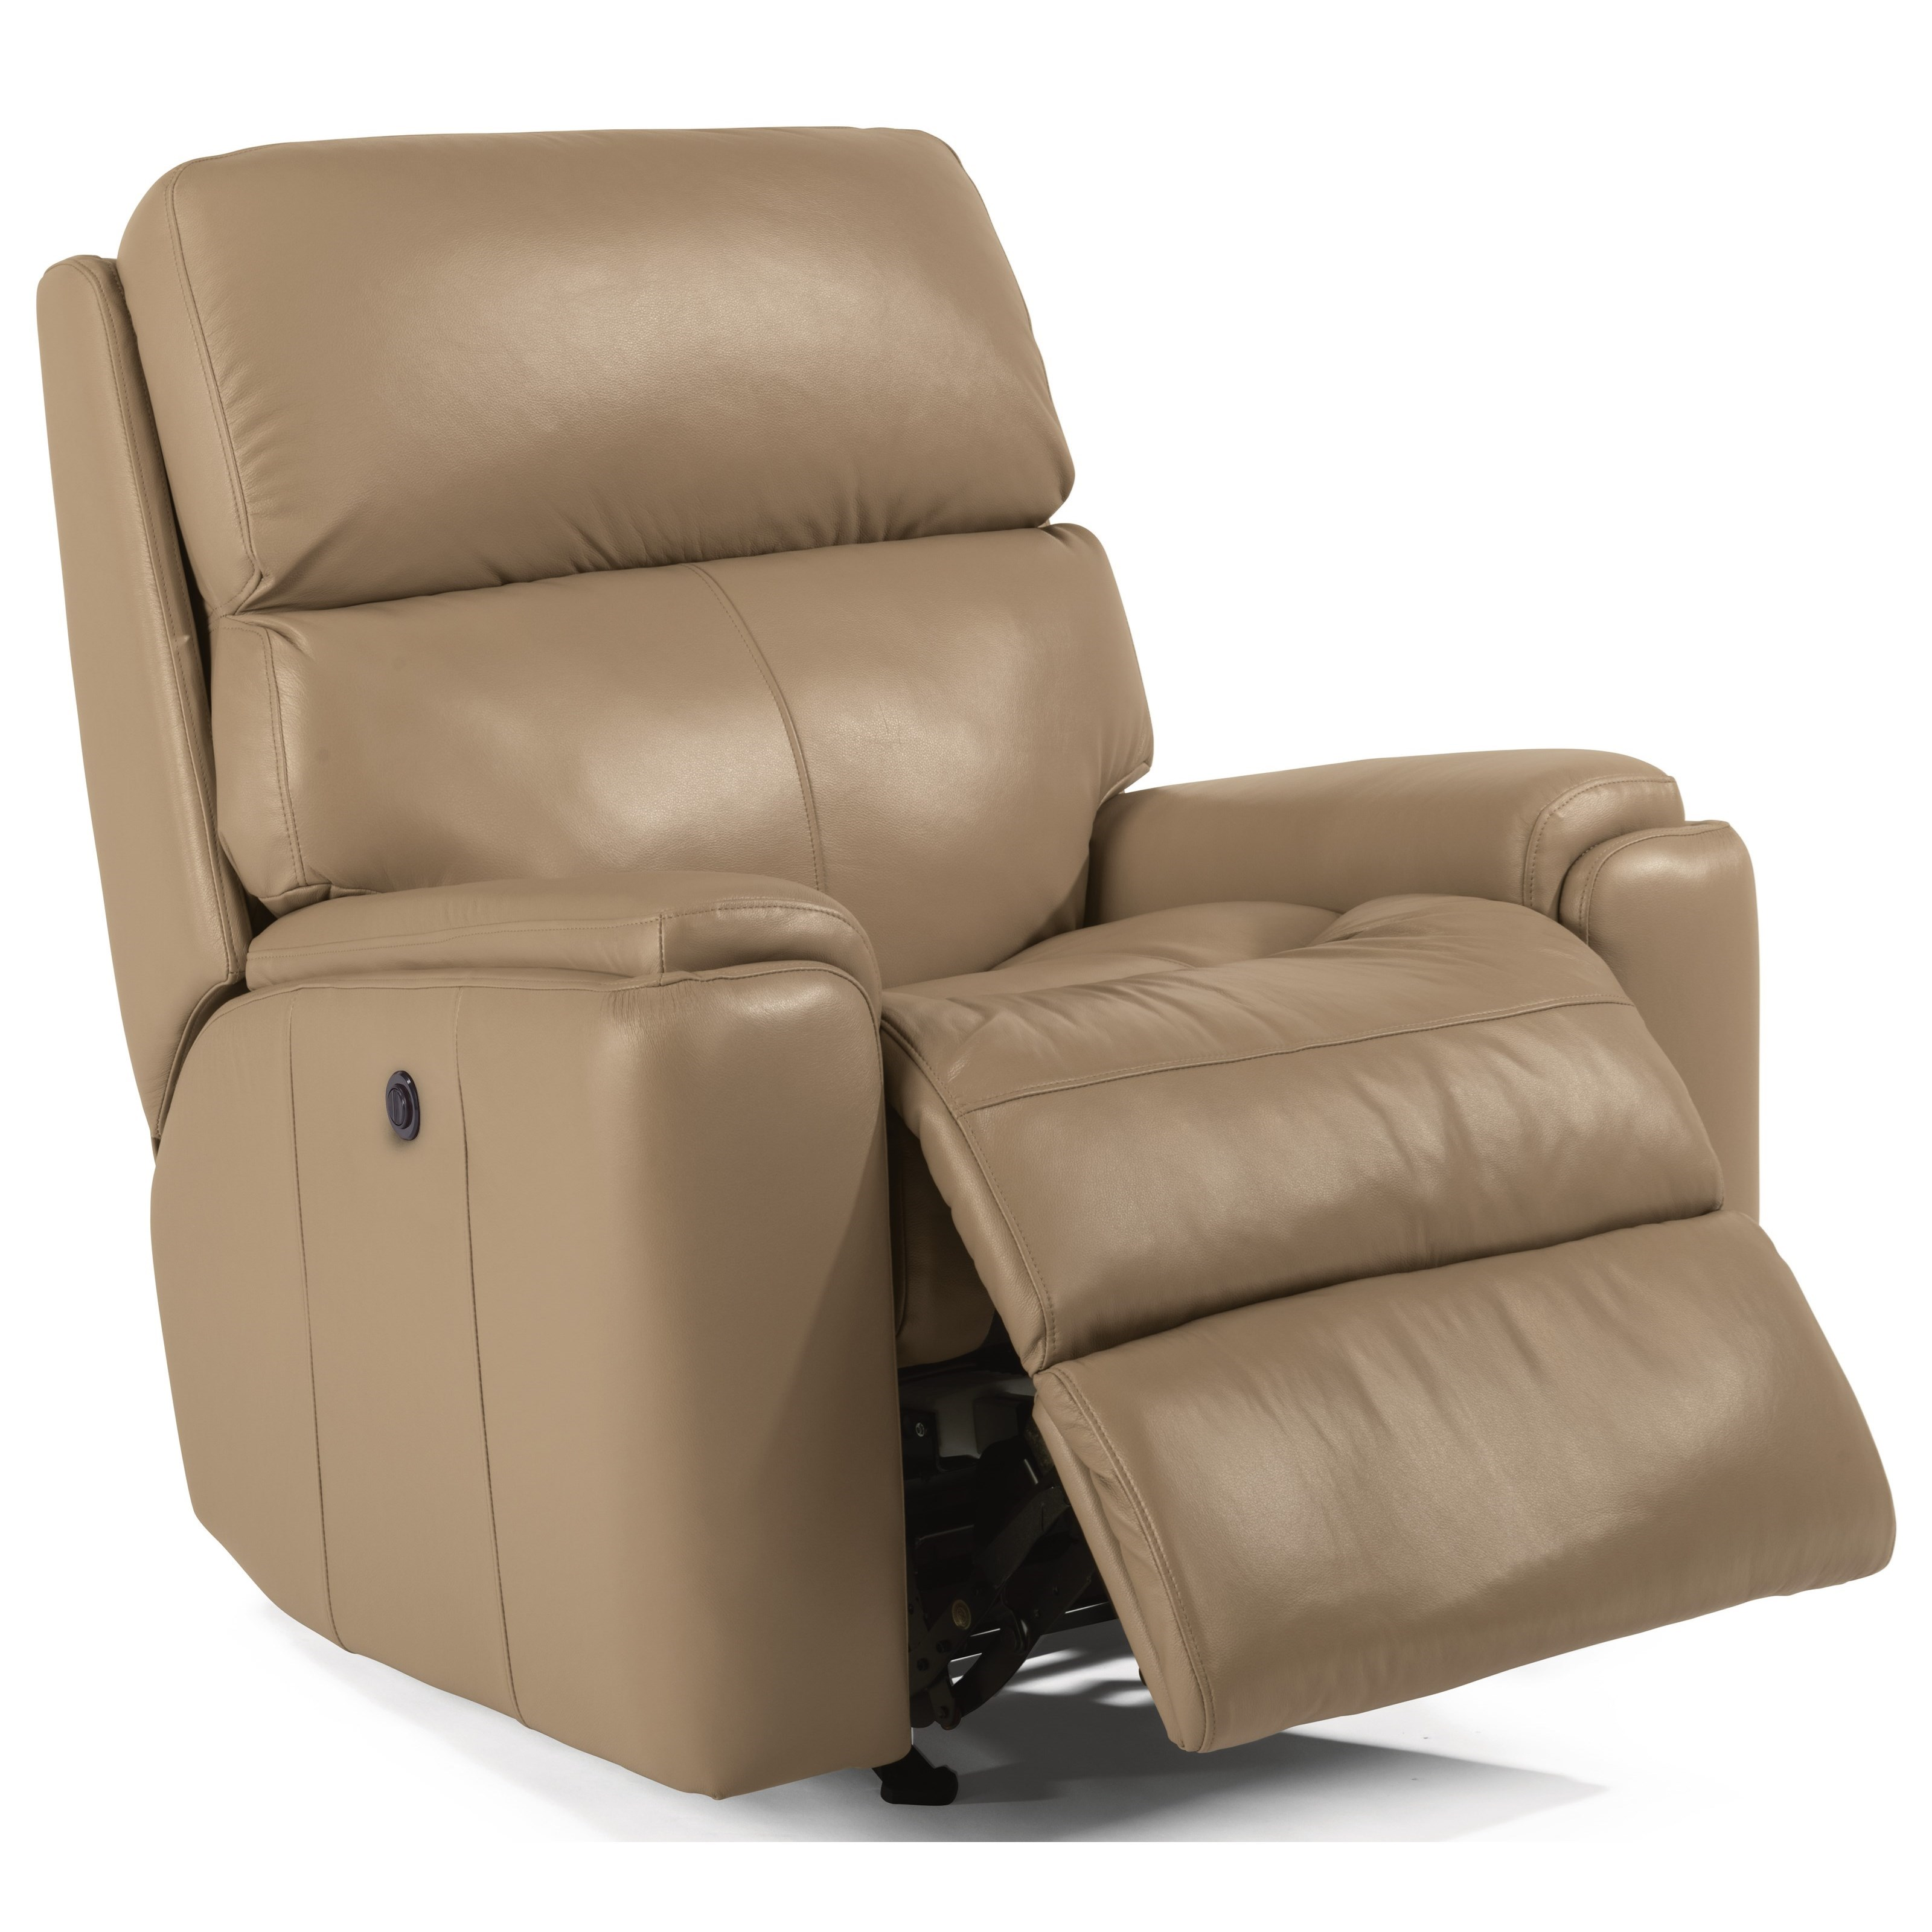 Rio Power Recliner by Flexsteel at Steger's Furniture